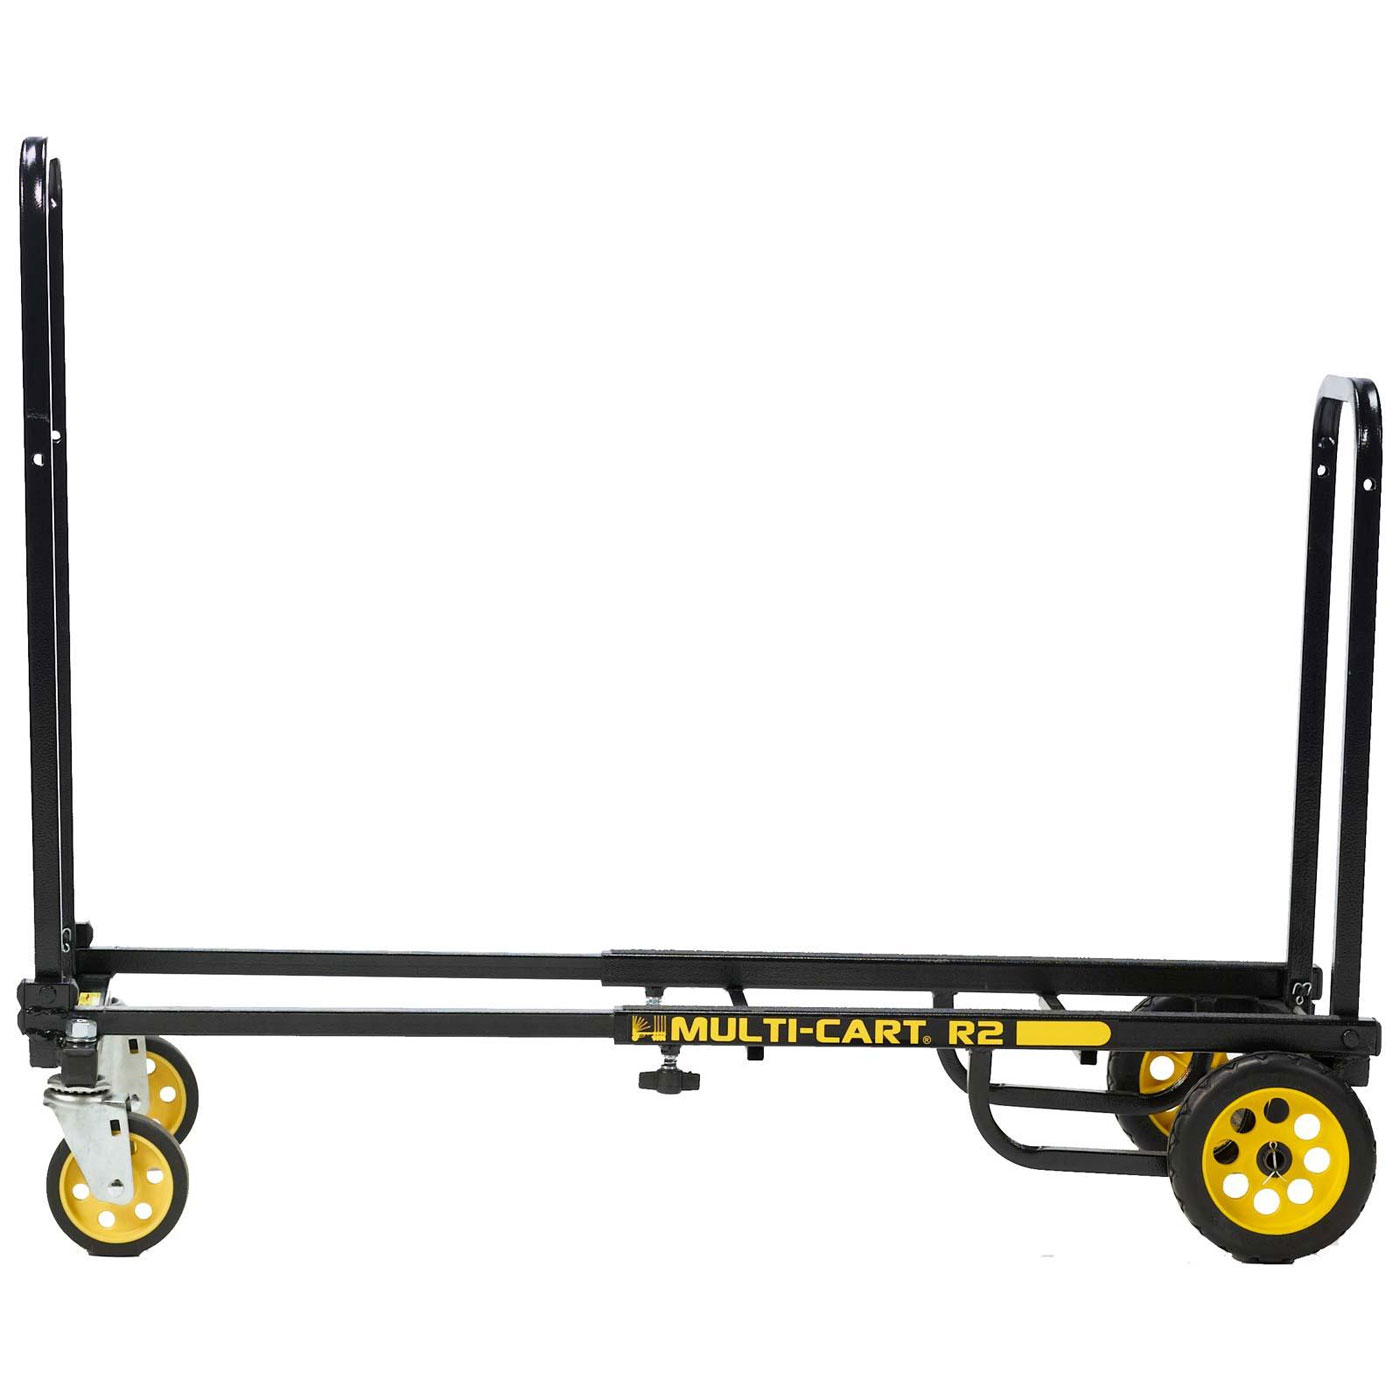 Rock-n-Roller R2RT Micro Multi-Cart with R-Trac Tires